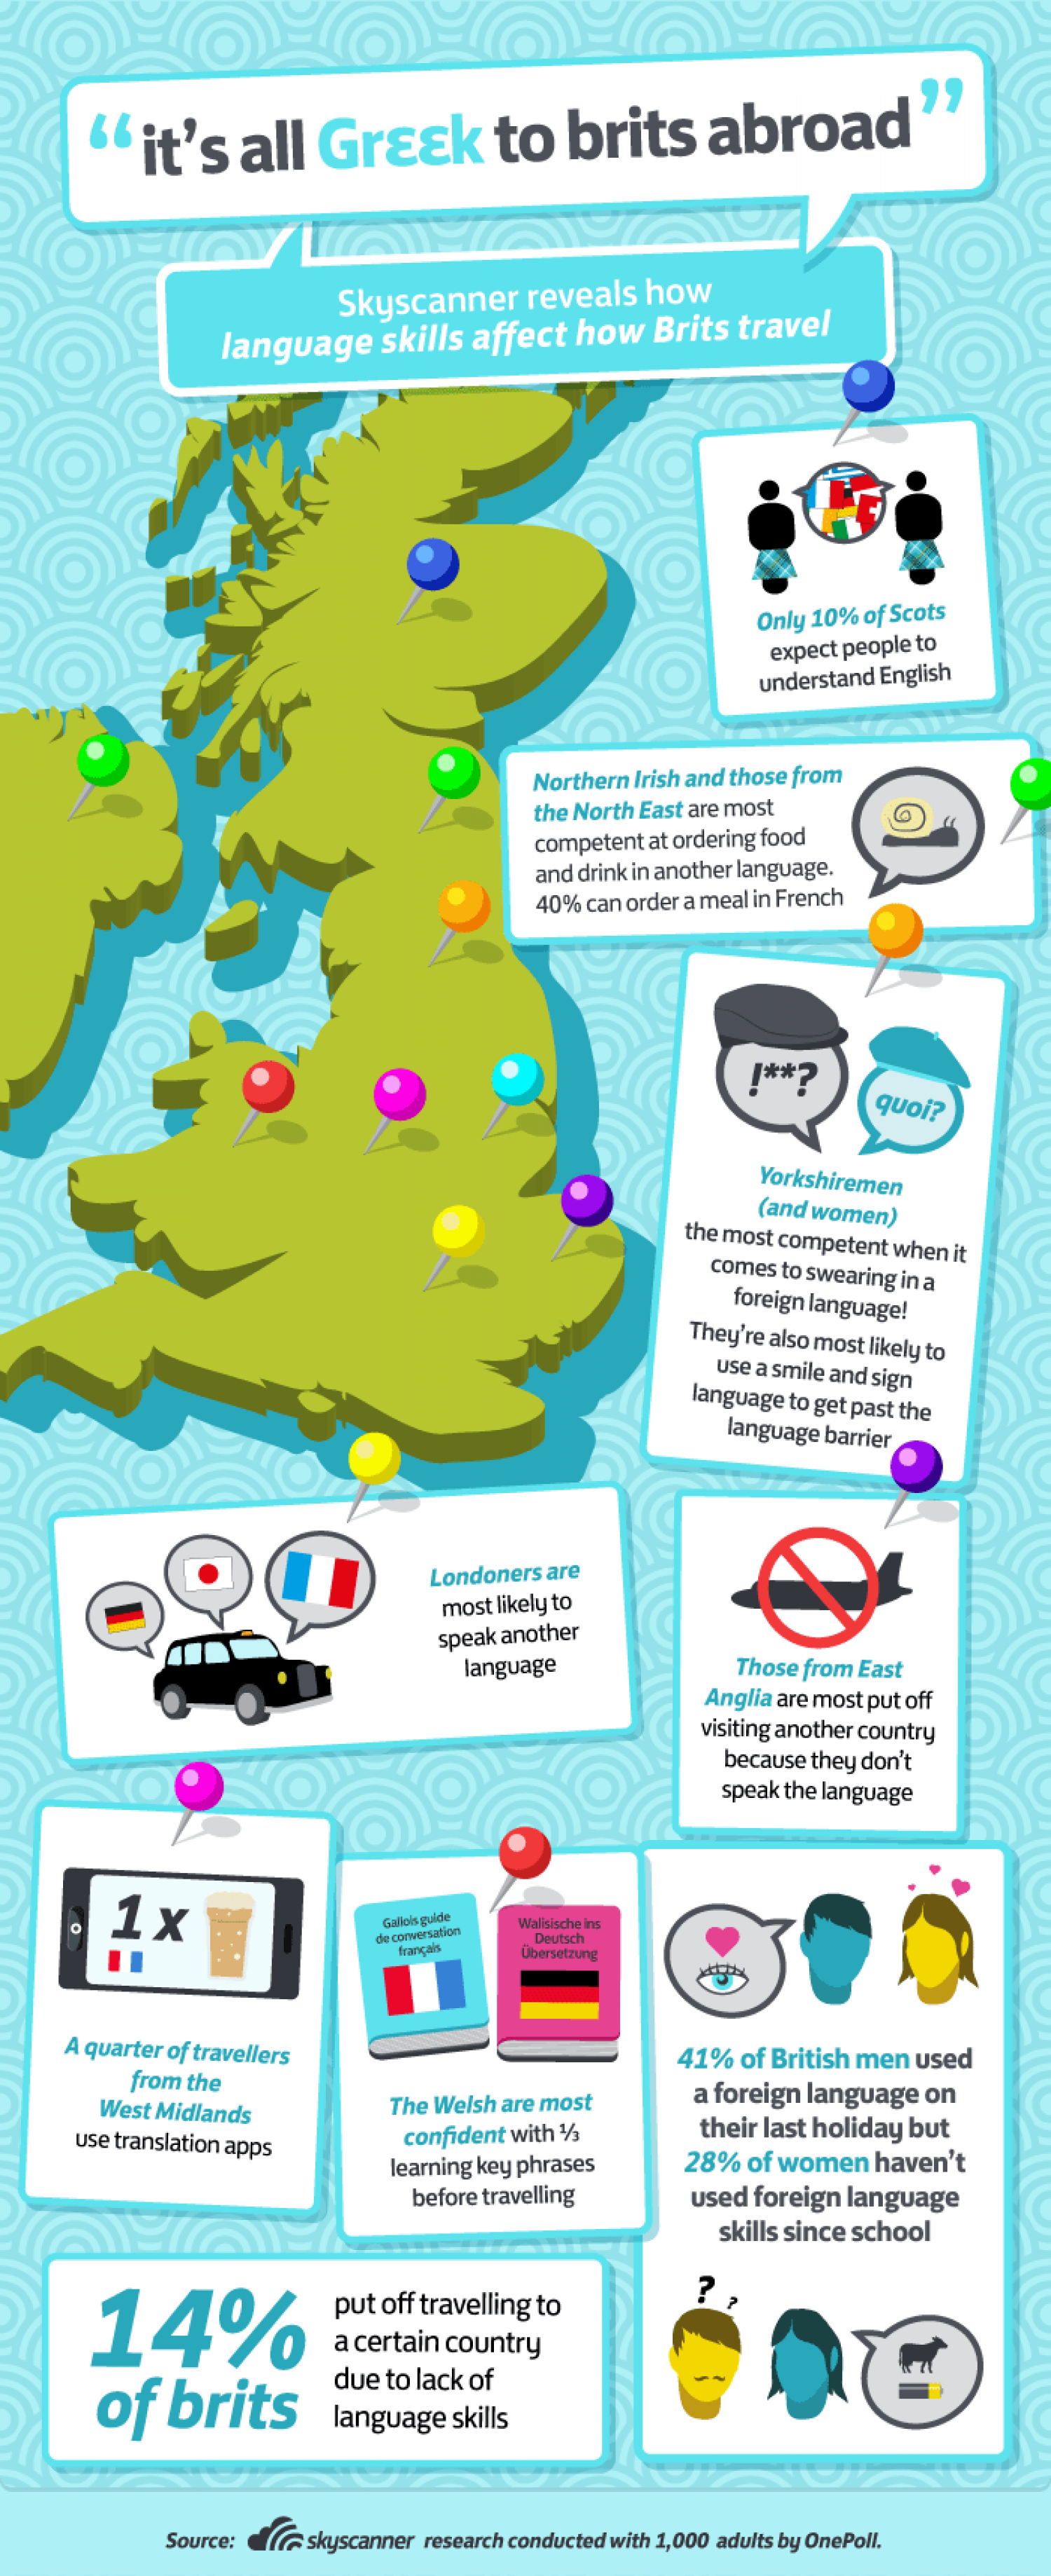 It's all Greek to brits abroad Infographic